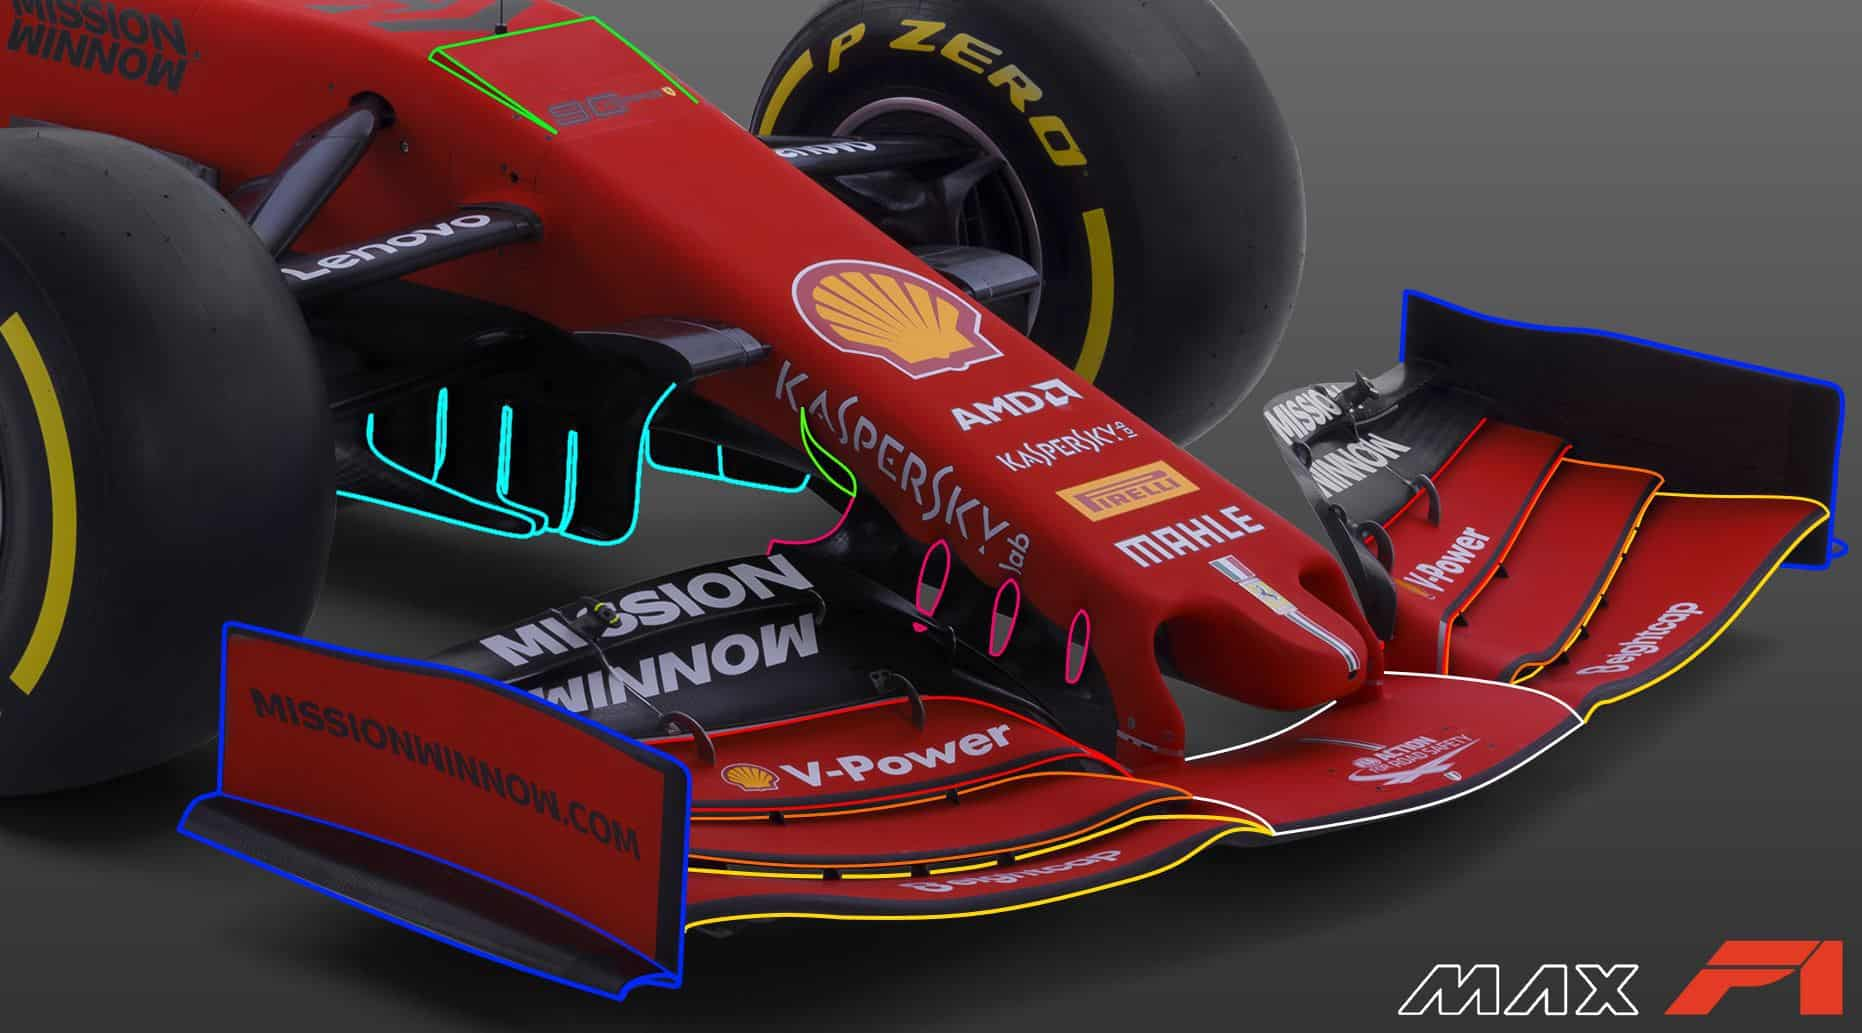 2019 F1 Ferrari SF90 front wing detail undernose vanes front suspension side view Photo Ferrari Edited by MAXF1net